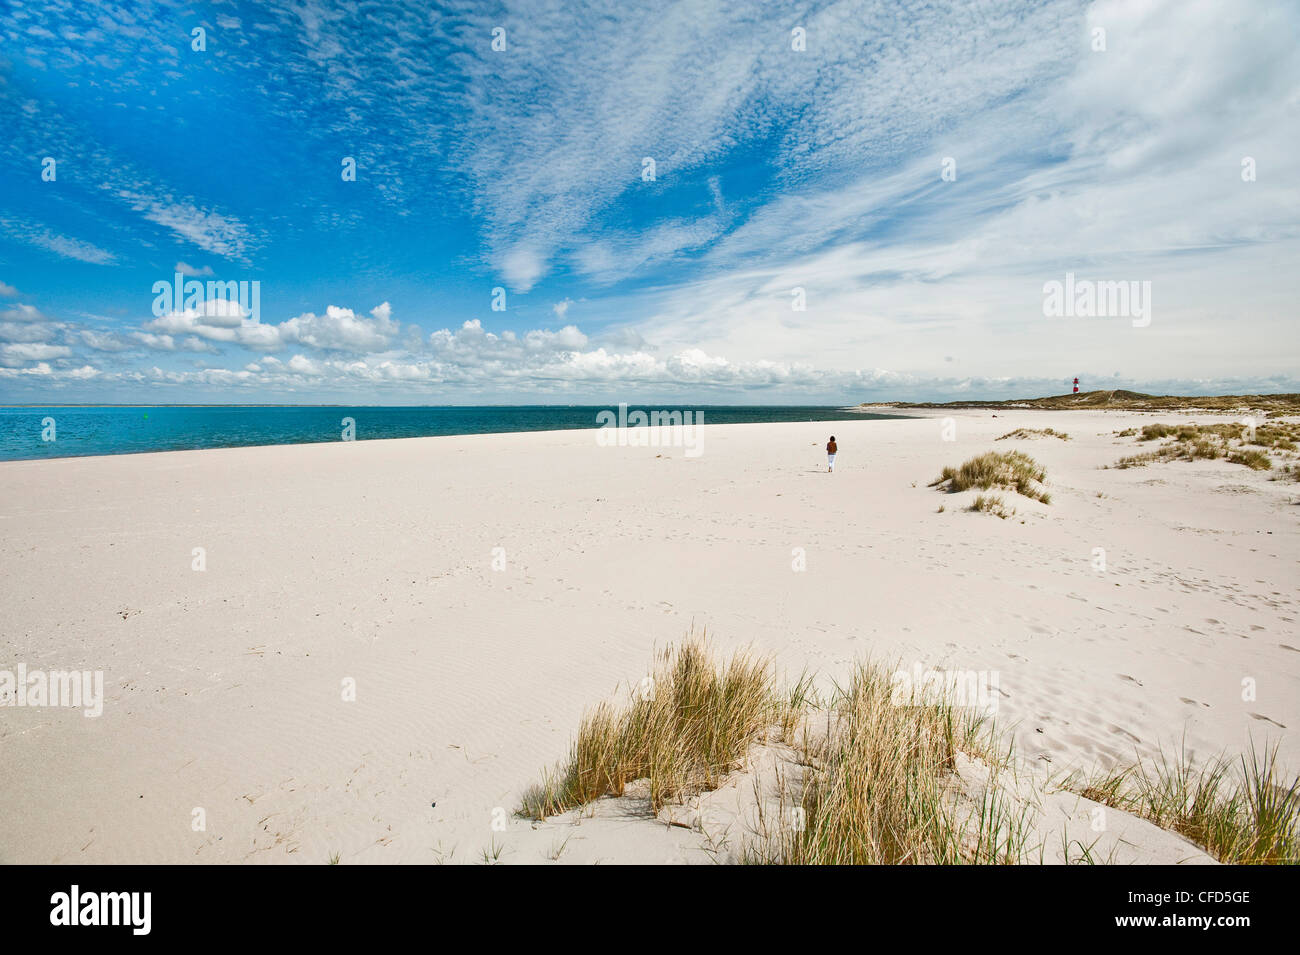 Woman walking barefooted on the beach, Island of Sylt, Schleswig Holstein, Germany, Europe - Stock Image